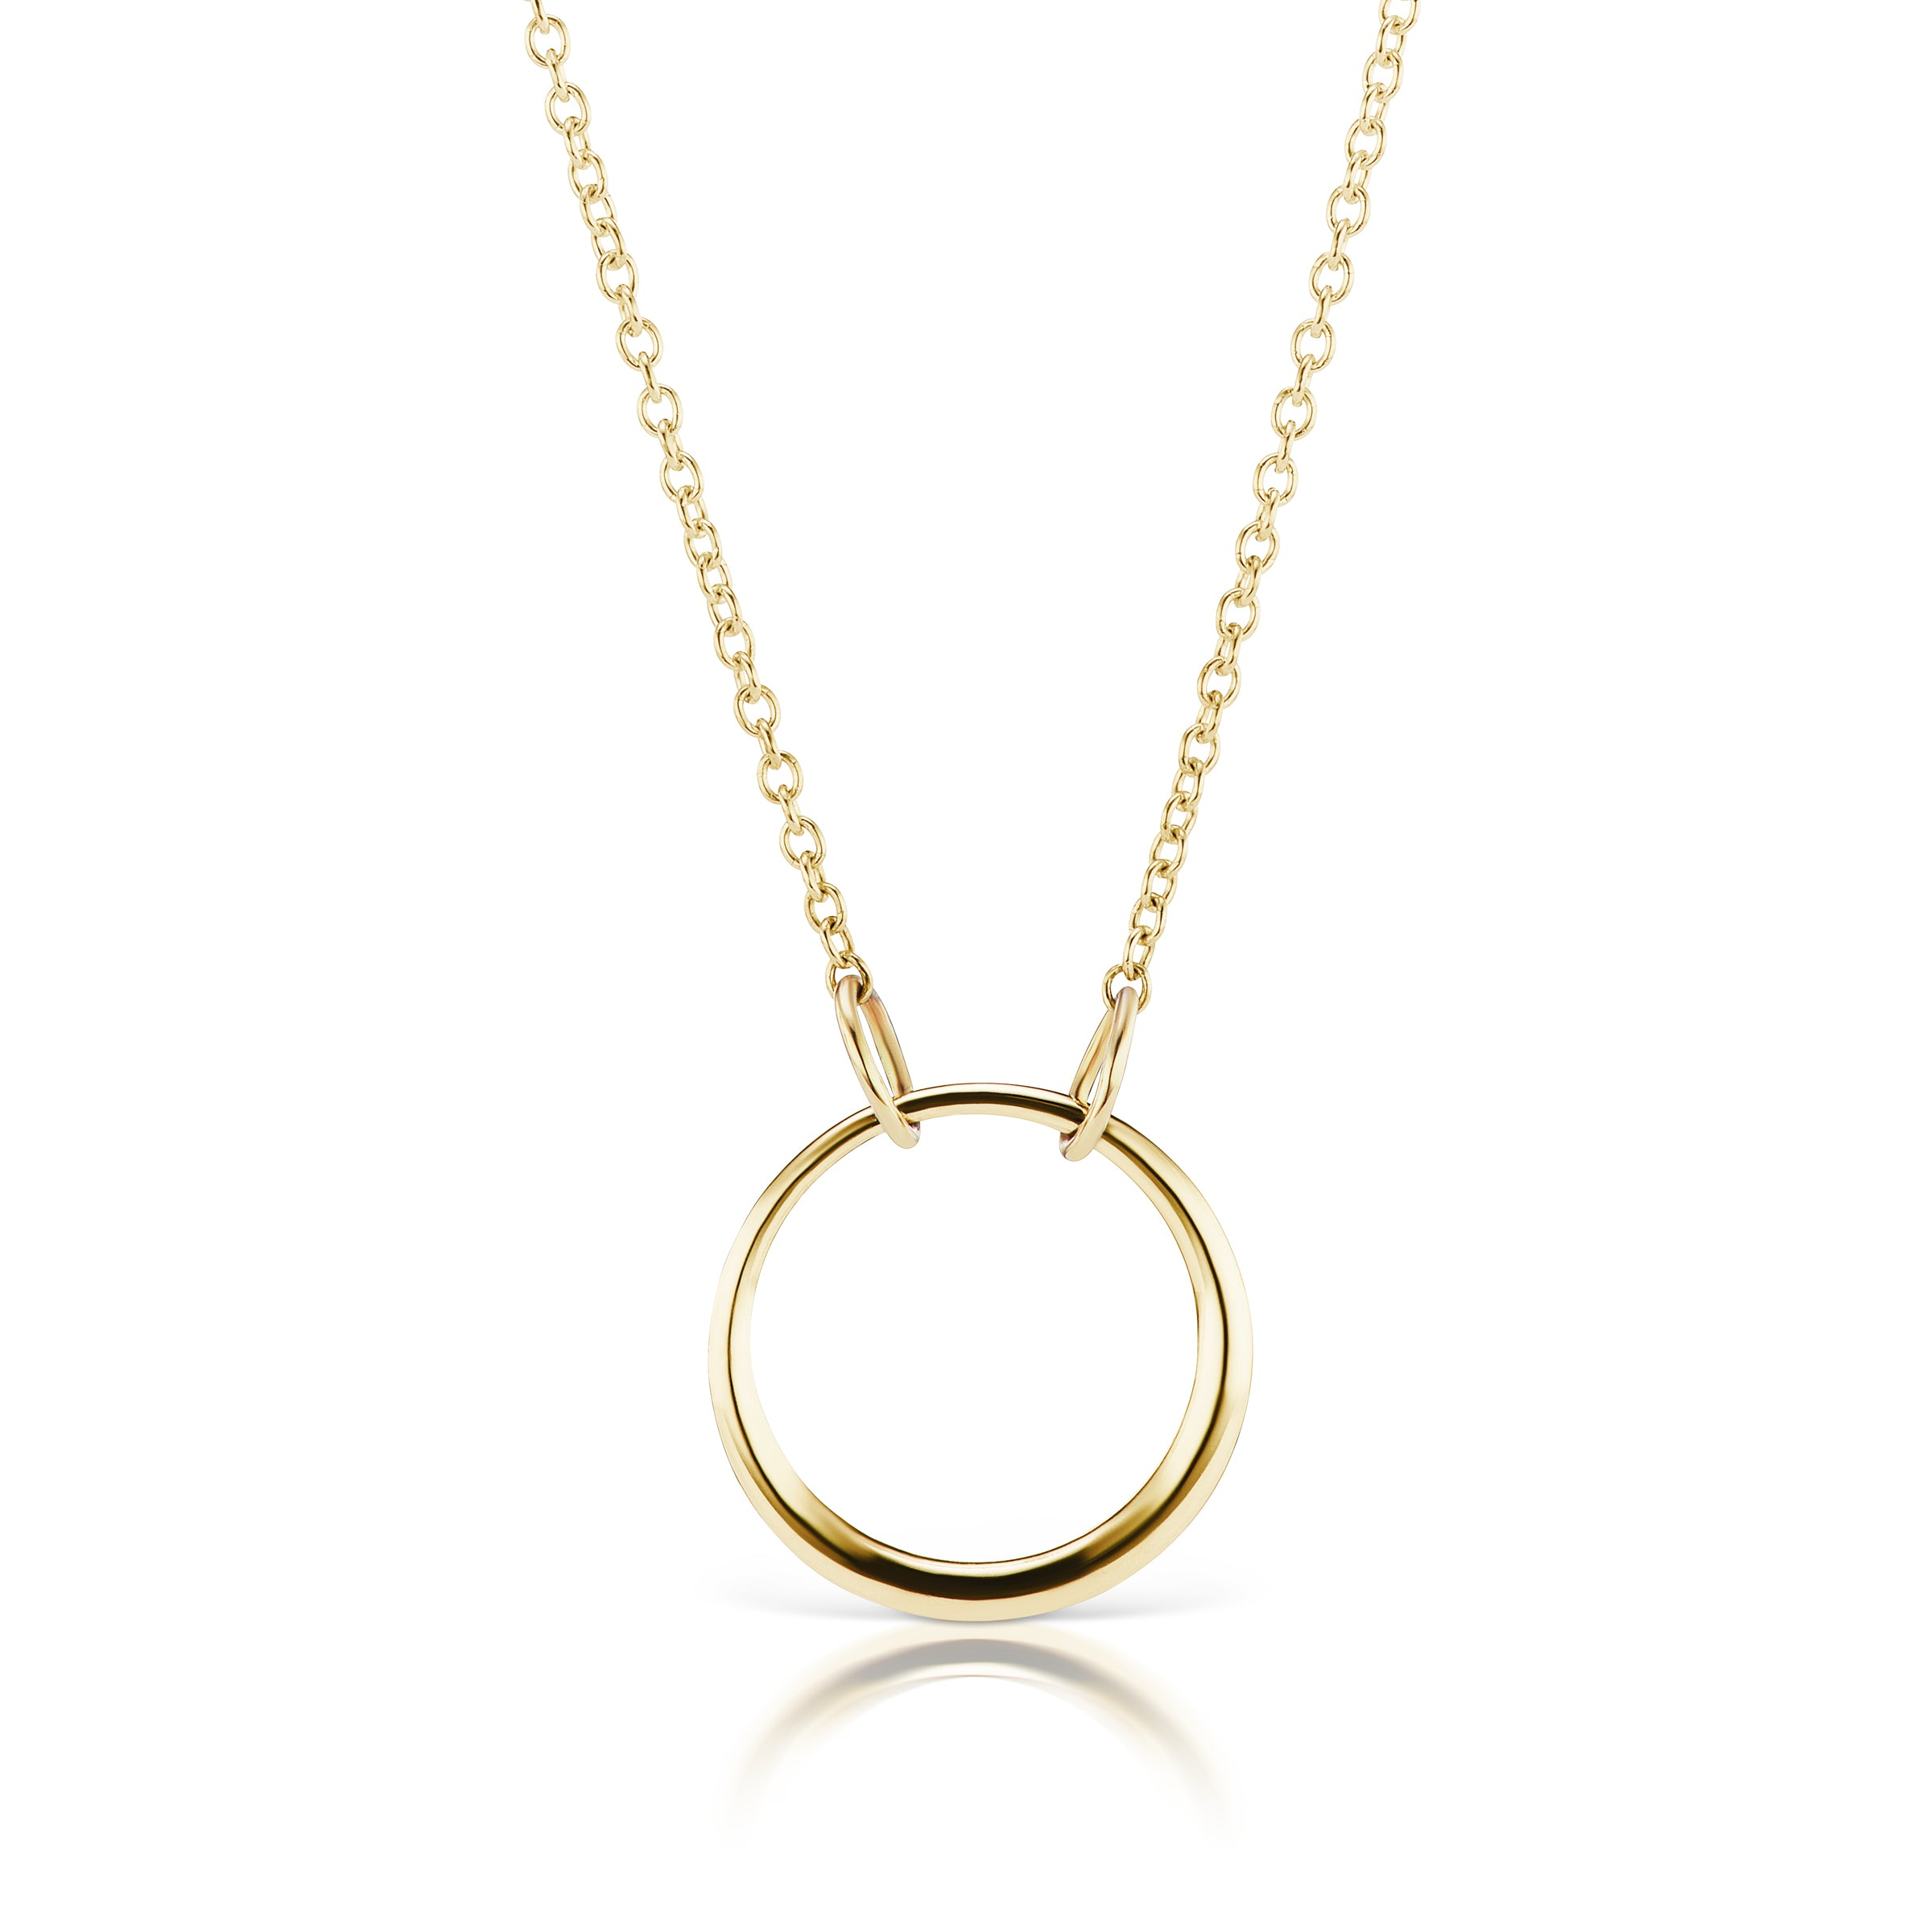 The Gold Petite Loop Necklace